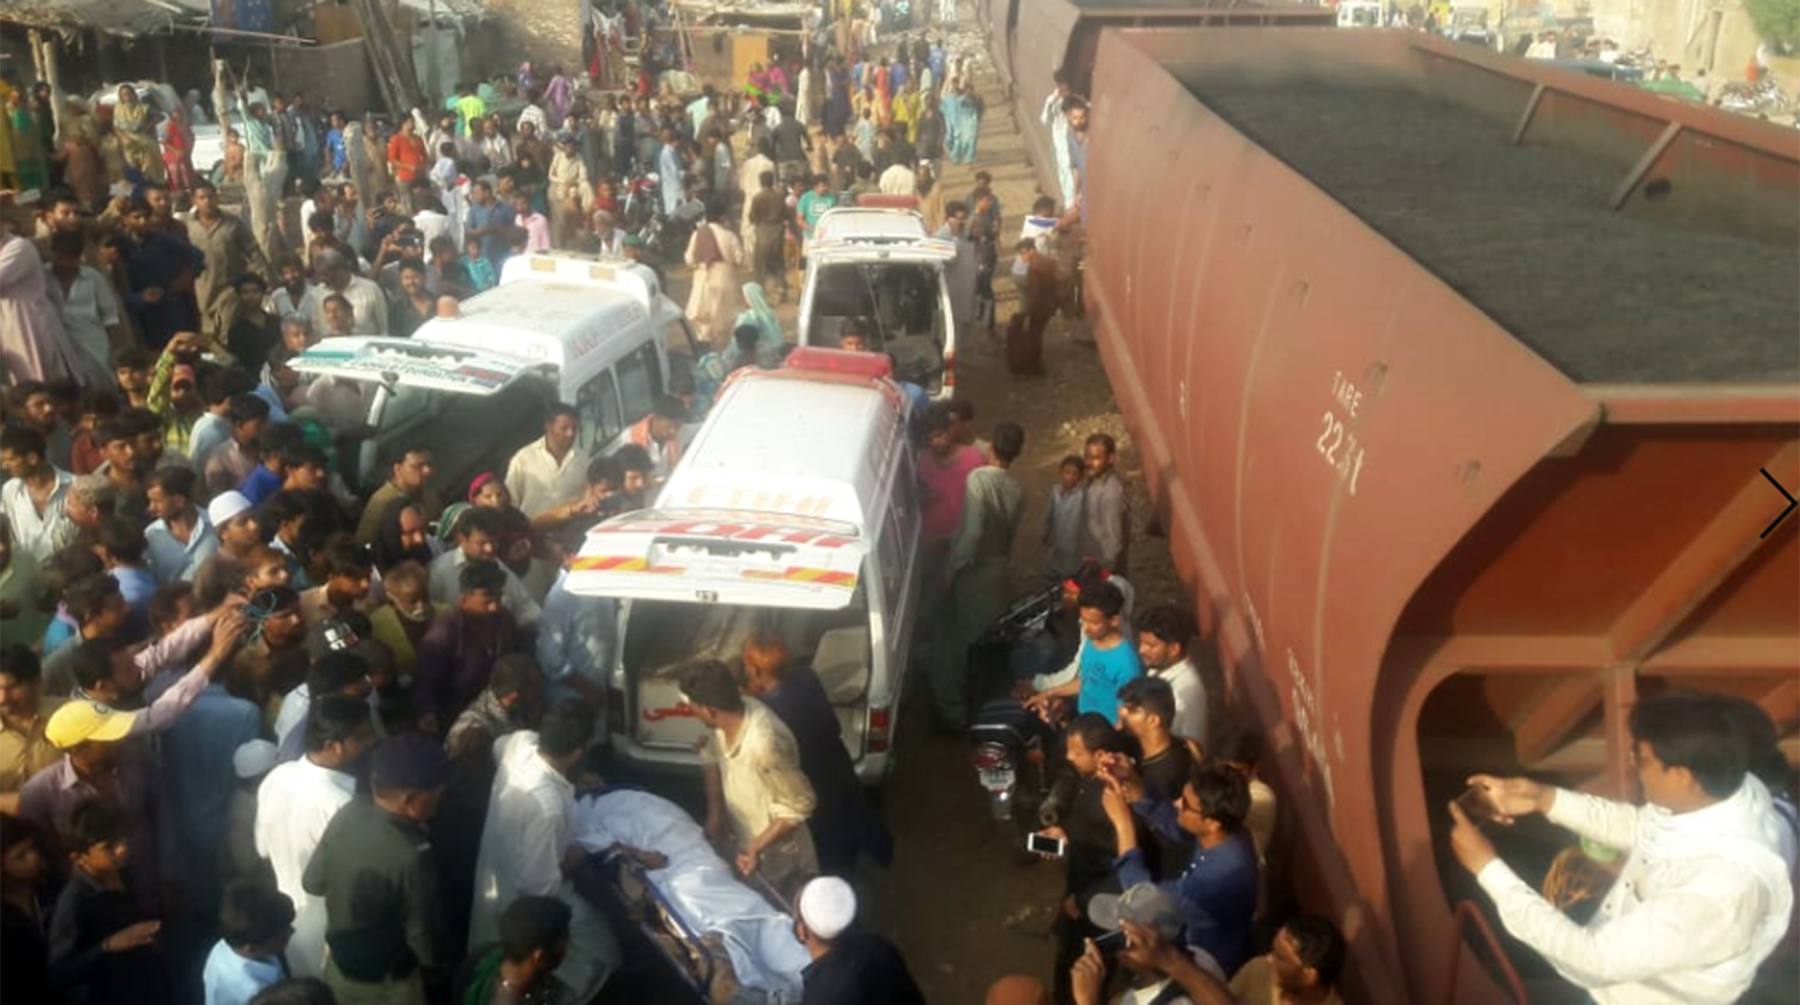 Edhi volunteers wade through large crowds to carry the bodies over to the ambulance. — Photo by Mohammad Hussain Khan